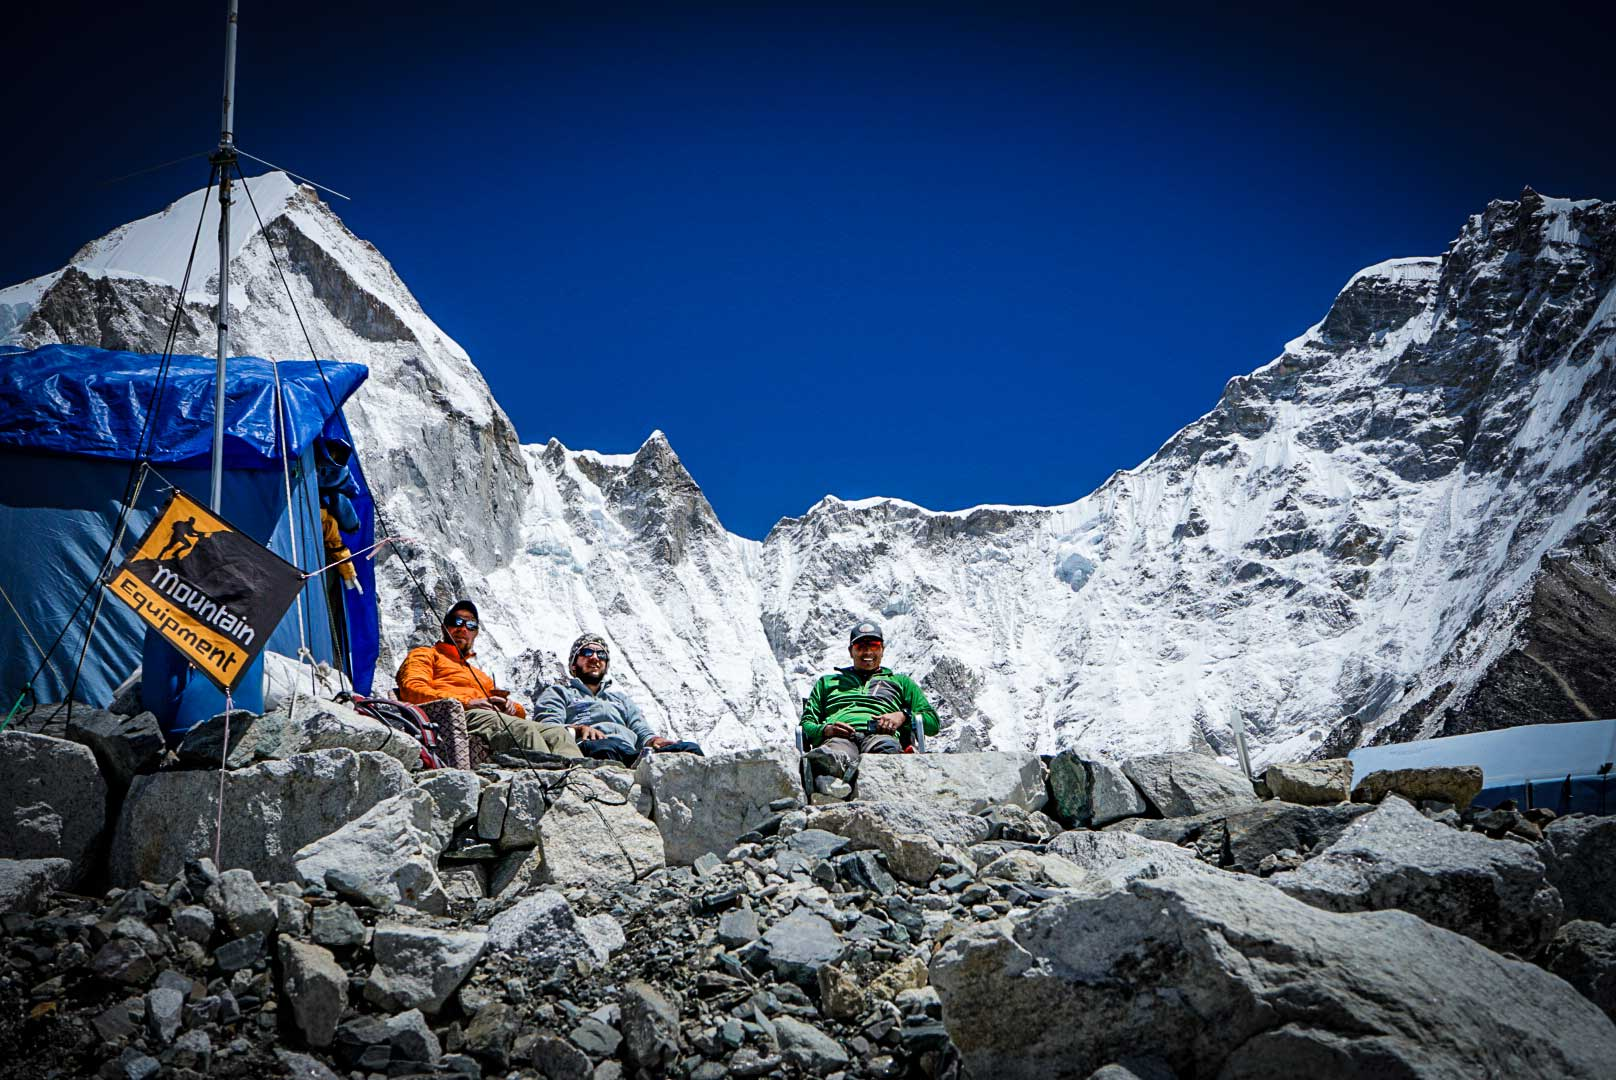 Resting up in Everest Base Camp, 2018